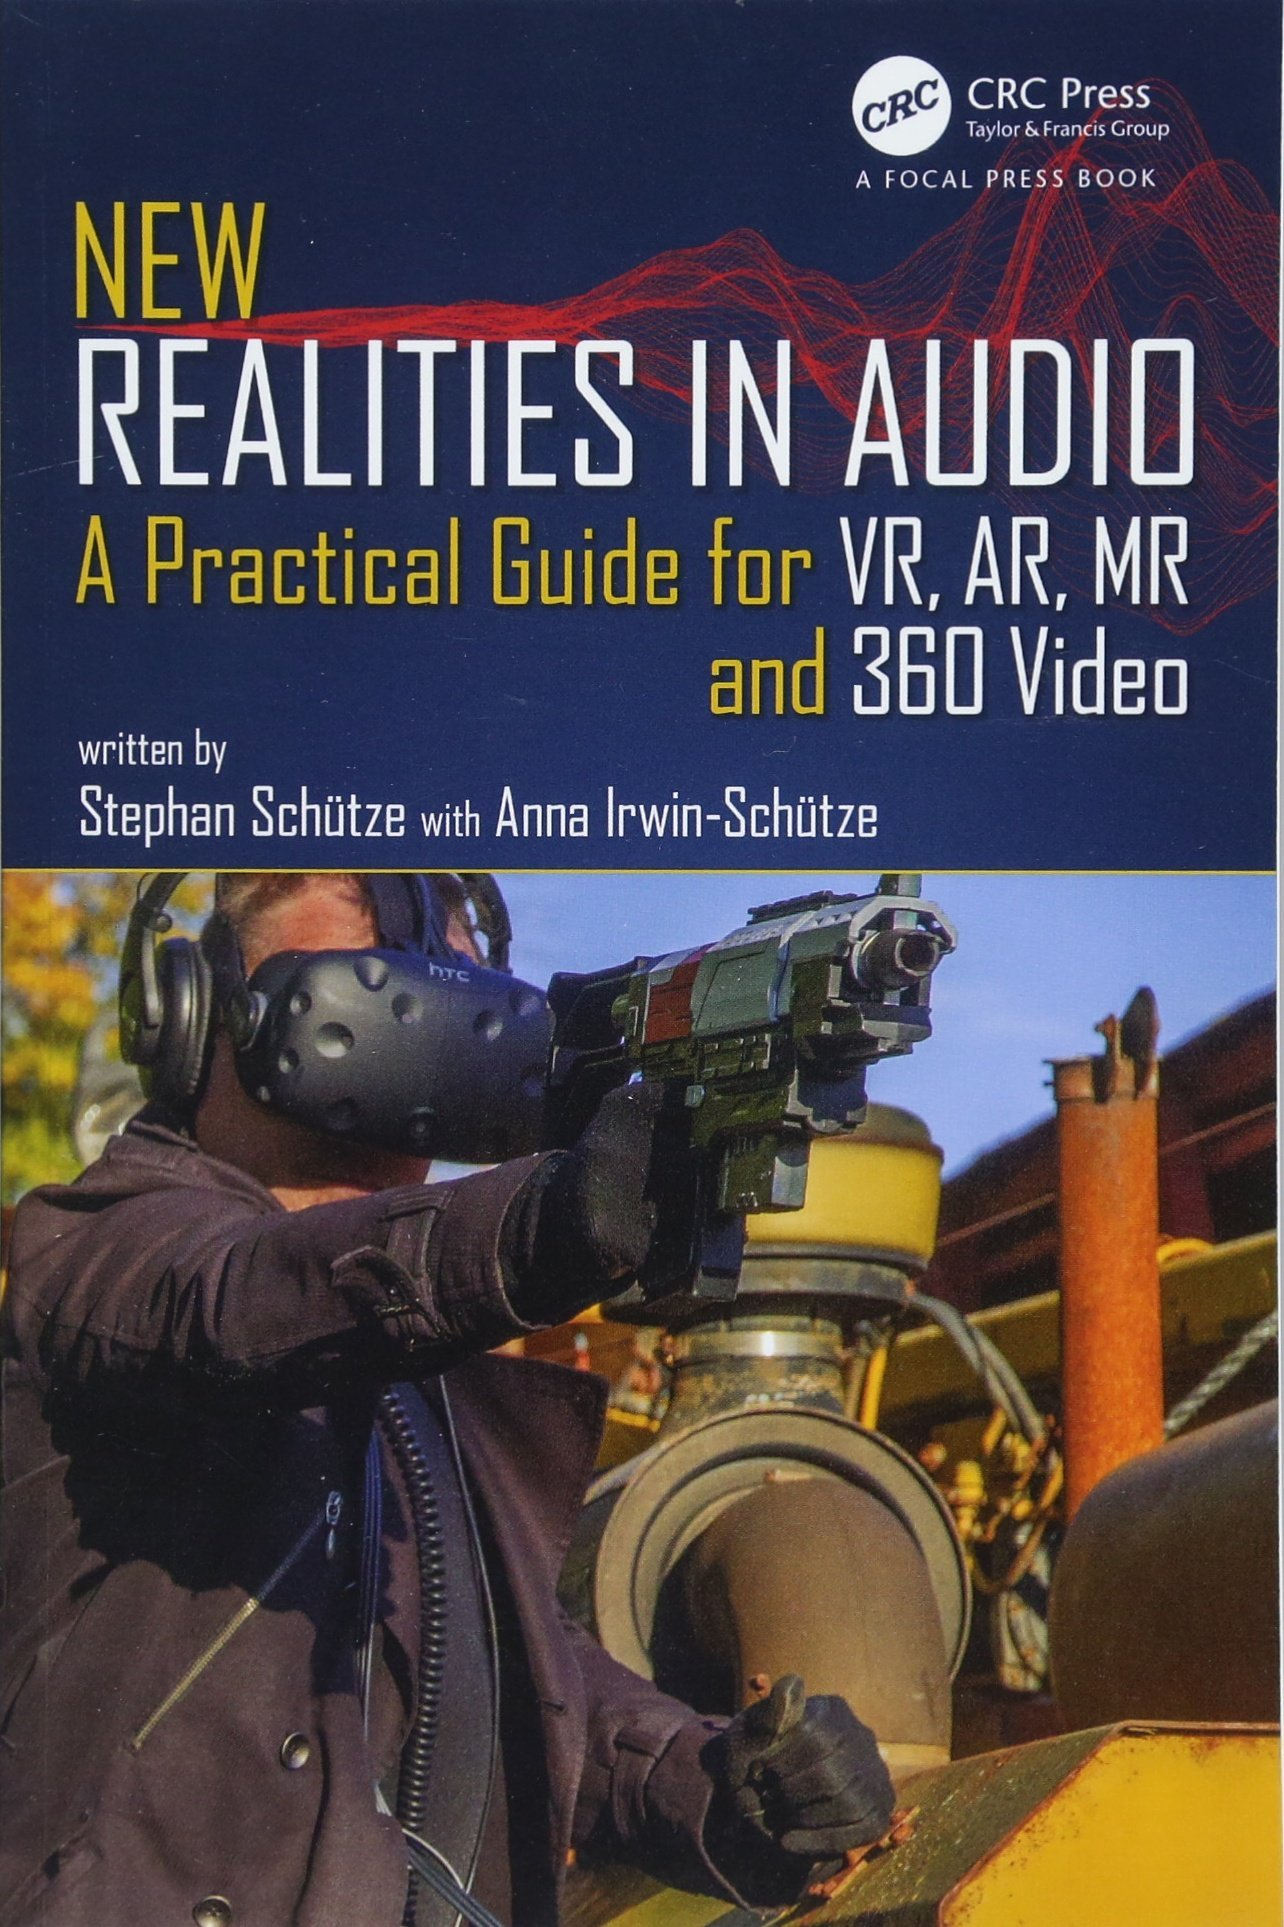 New Realities in Audio: A Practical Guide for VR, AR, MR and 360 Video. by CRC Press